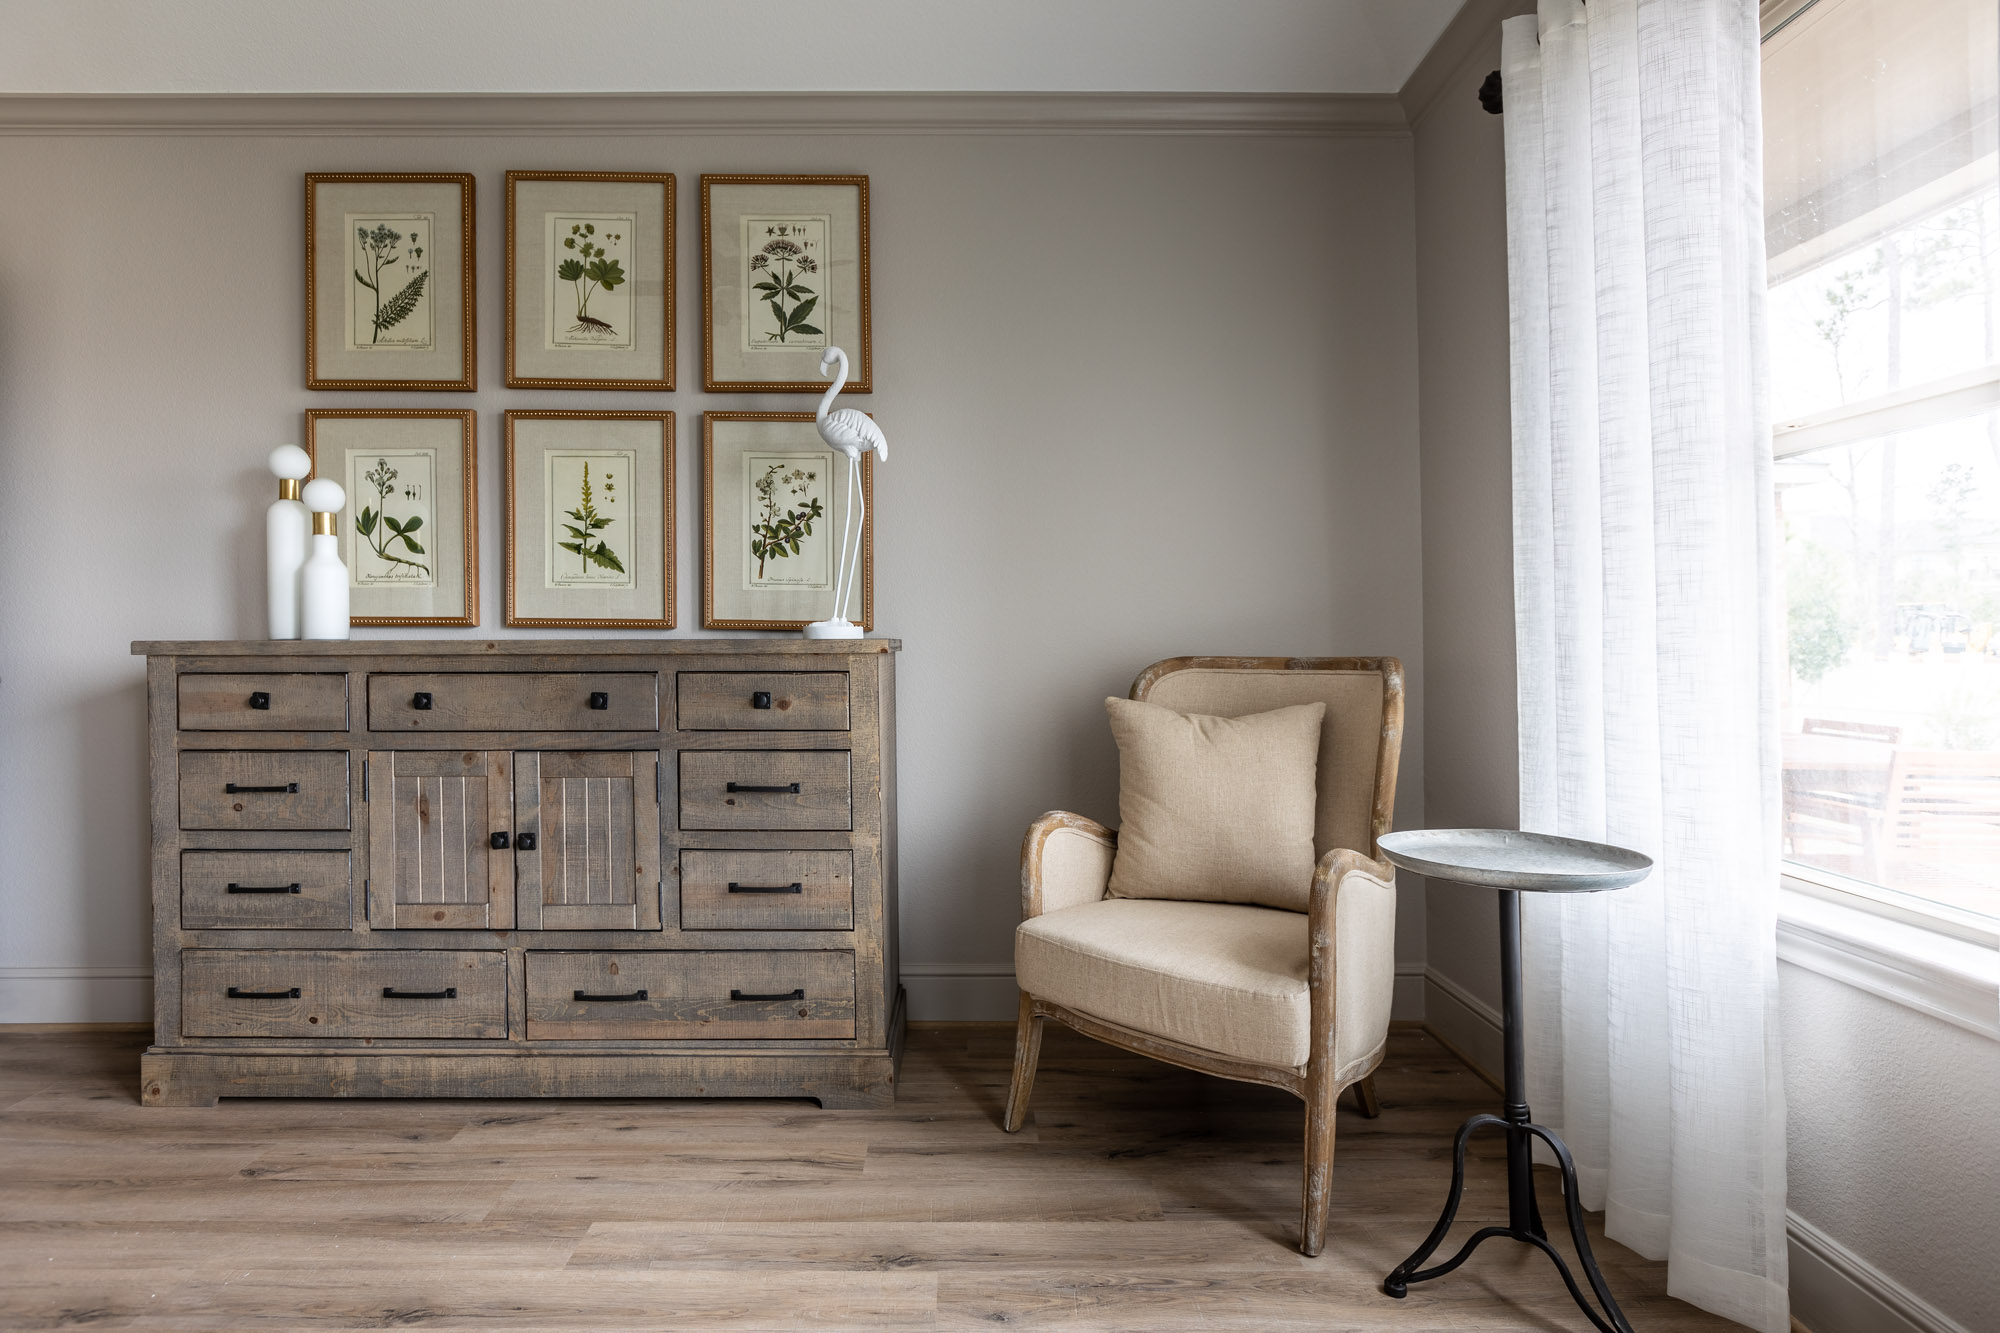 Harper's Preserve bedroom corner with traditional distressed wood dresser and linen and wood armchair